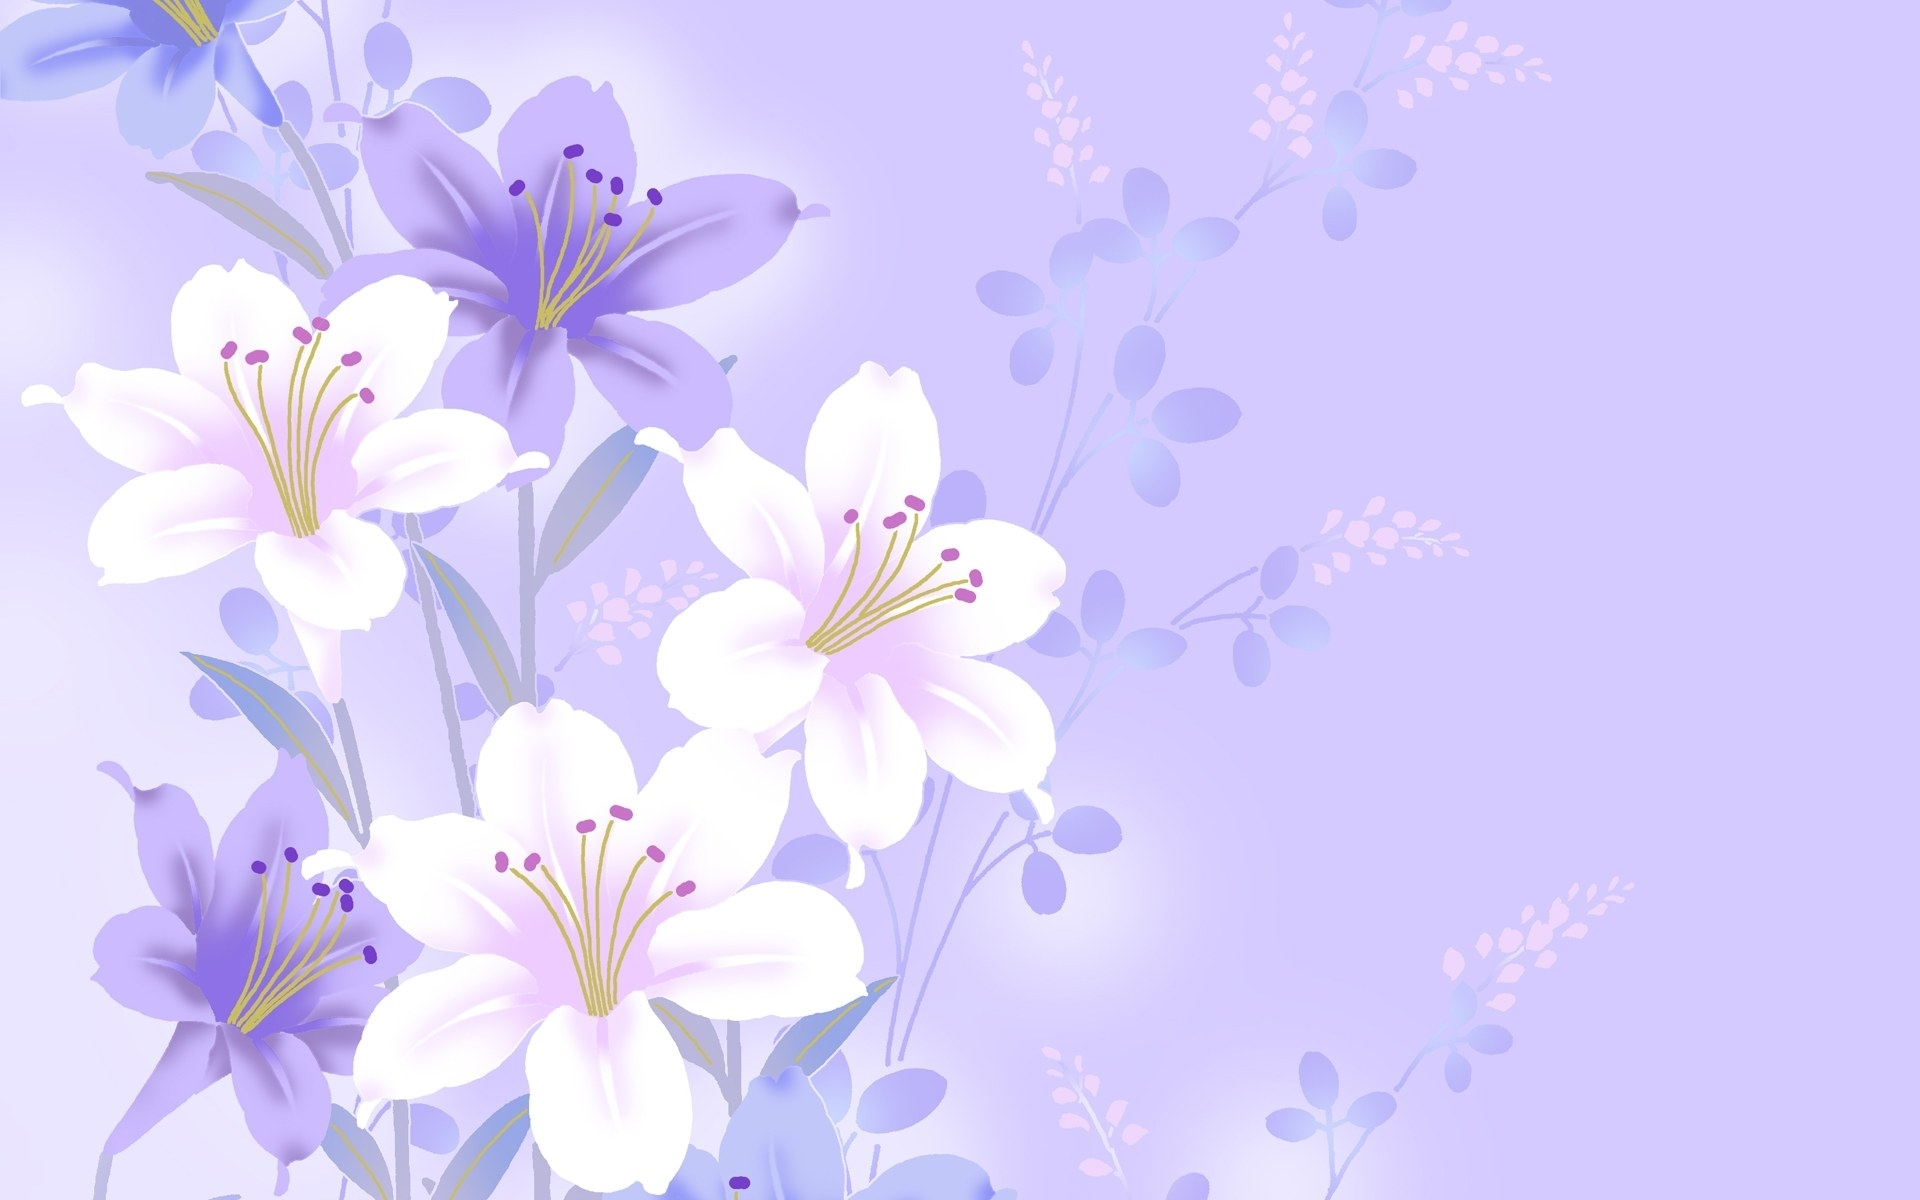 awesome flower wallpaper backgrounds high quality desktop images